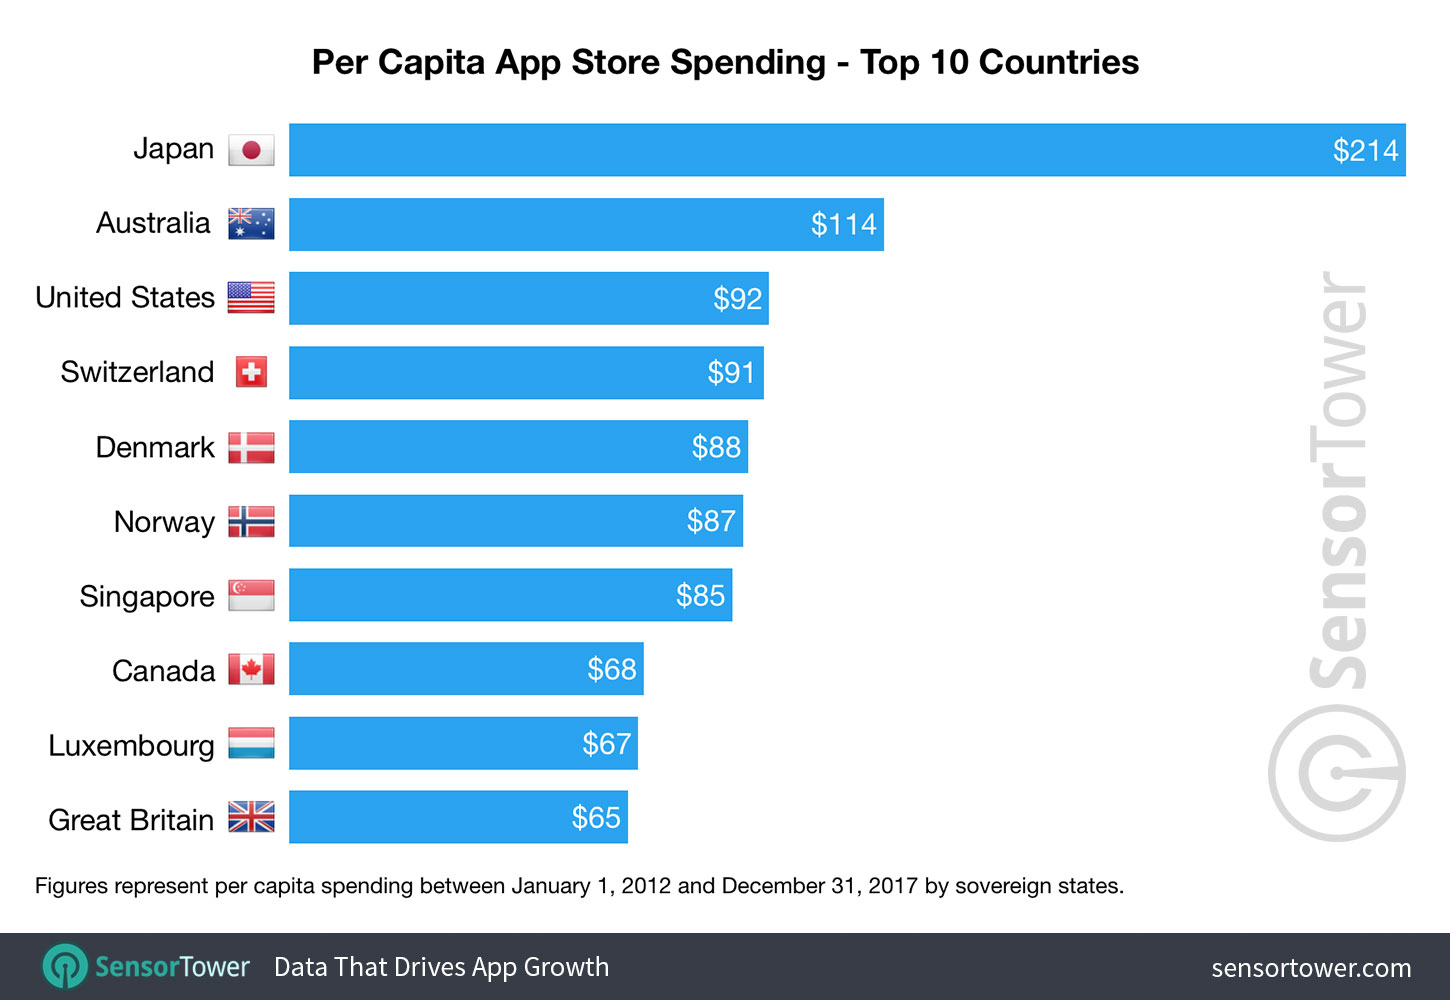 Chart showing a ranking of countries by per capita spending on Apple's App Store between 2012 and 2017